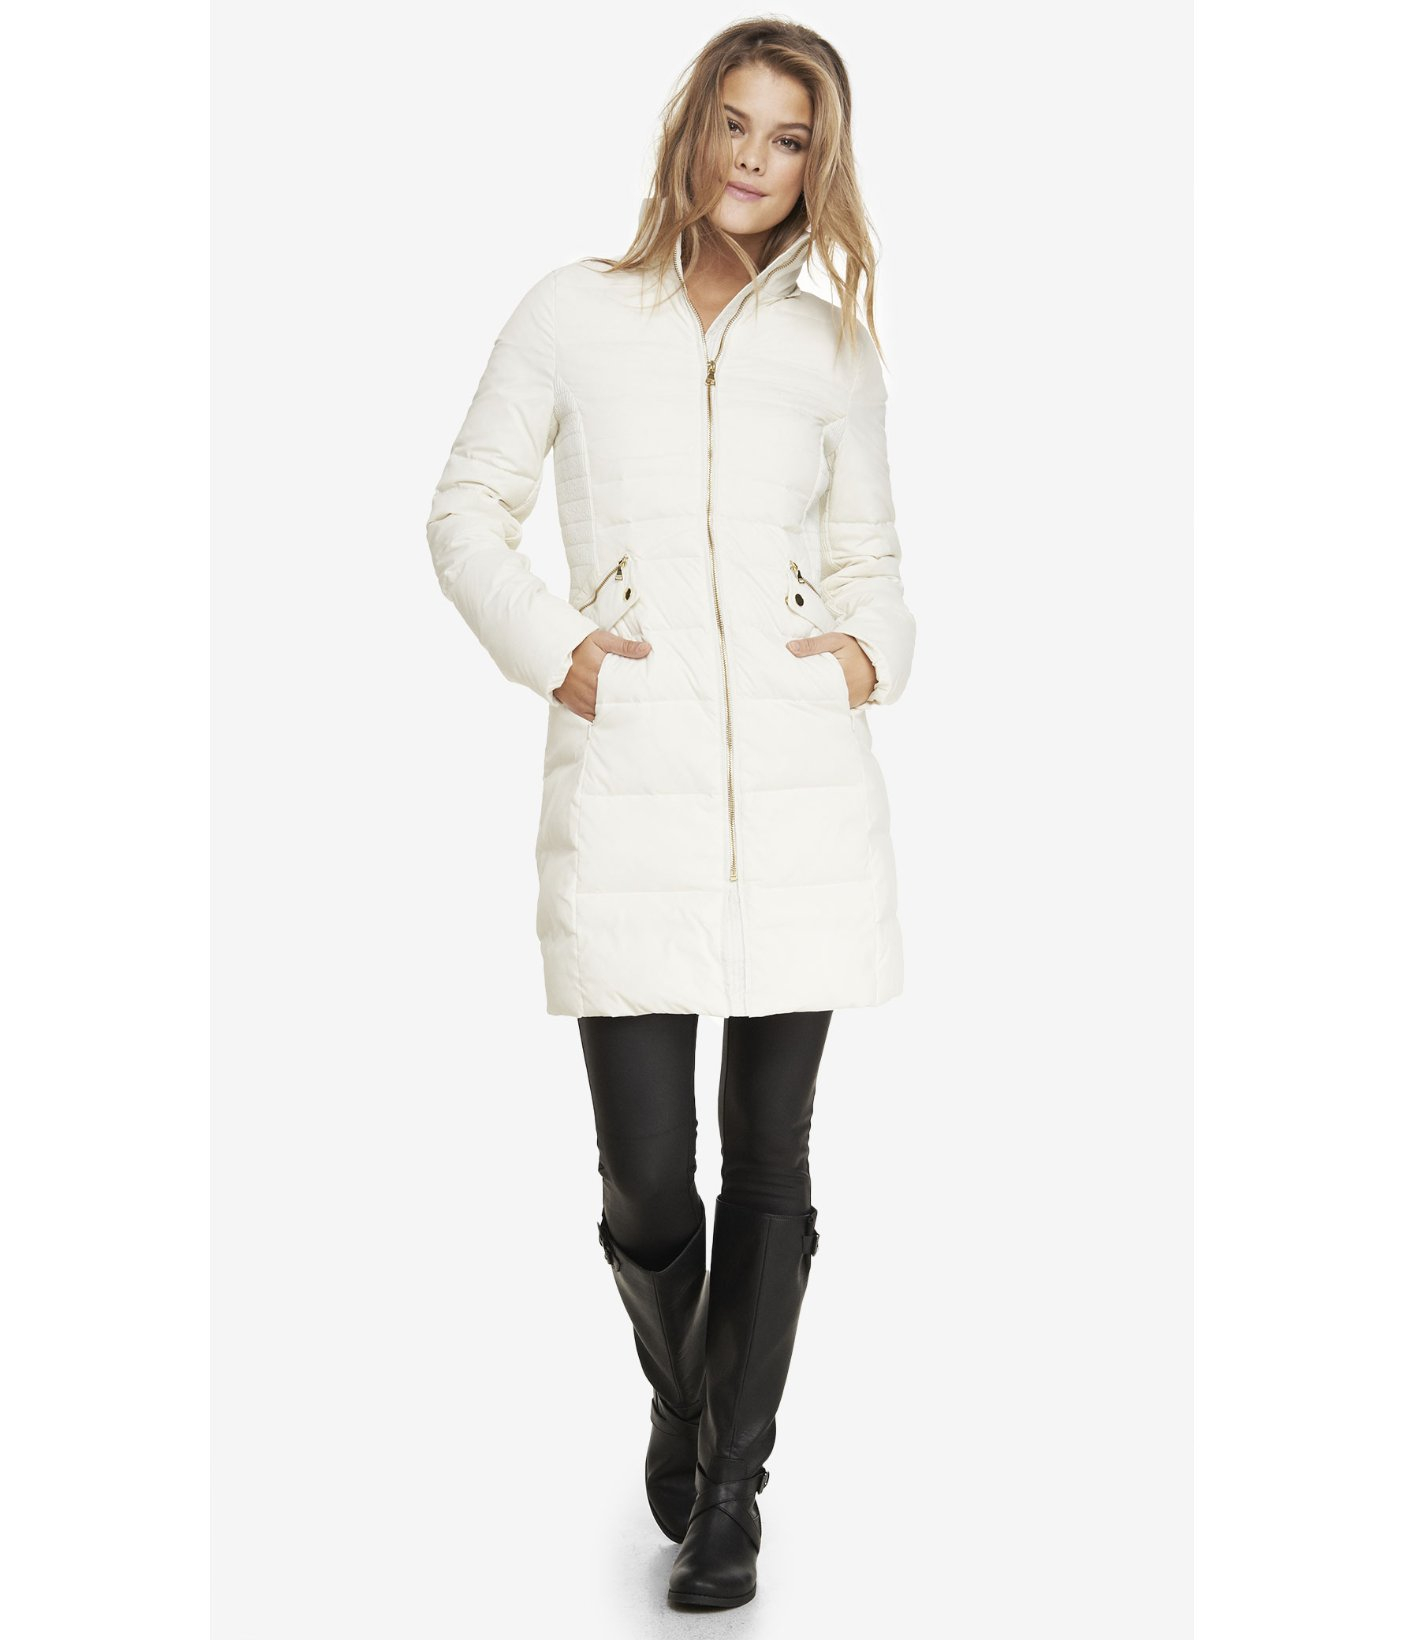 Express Hooded Faux Fur Trim Fitted Puffer Coat in White | Lyst